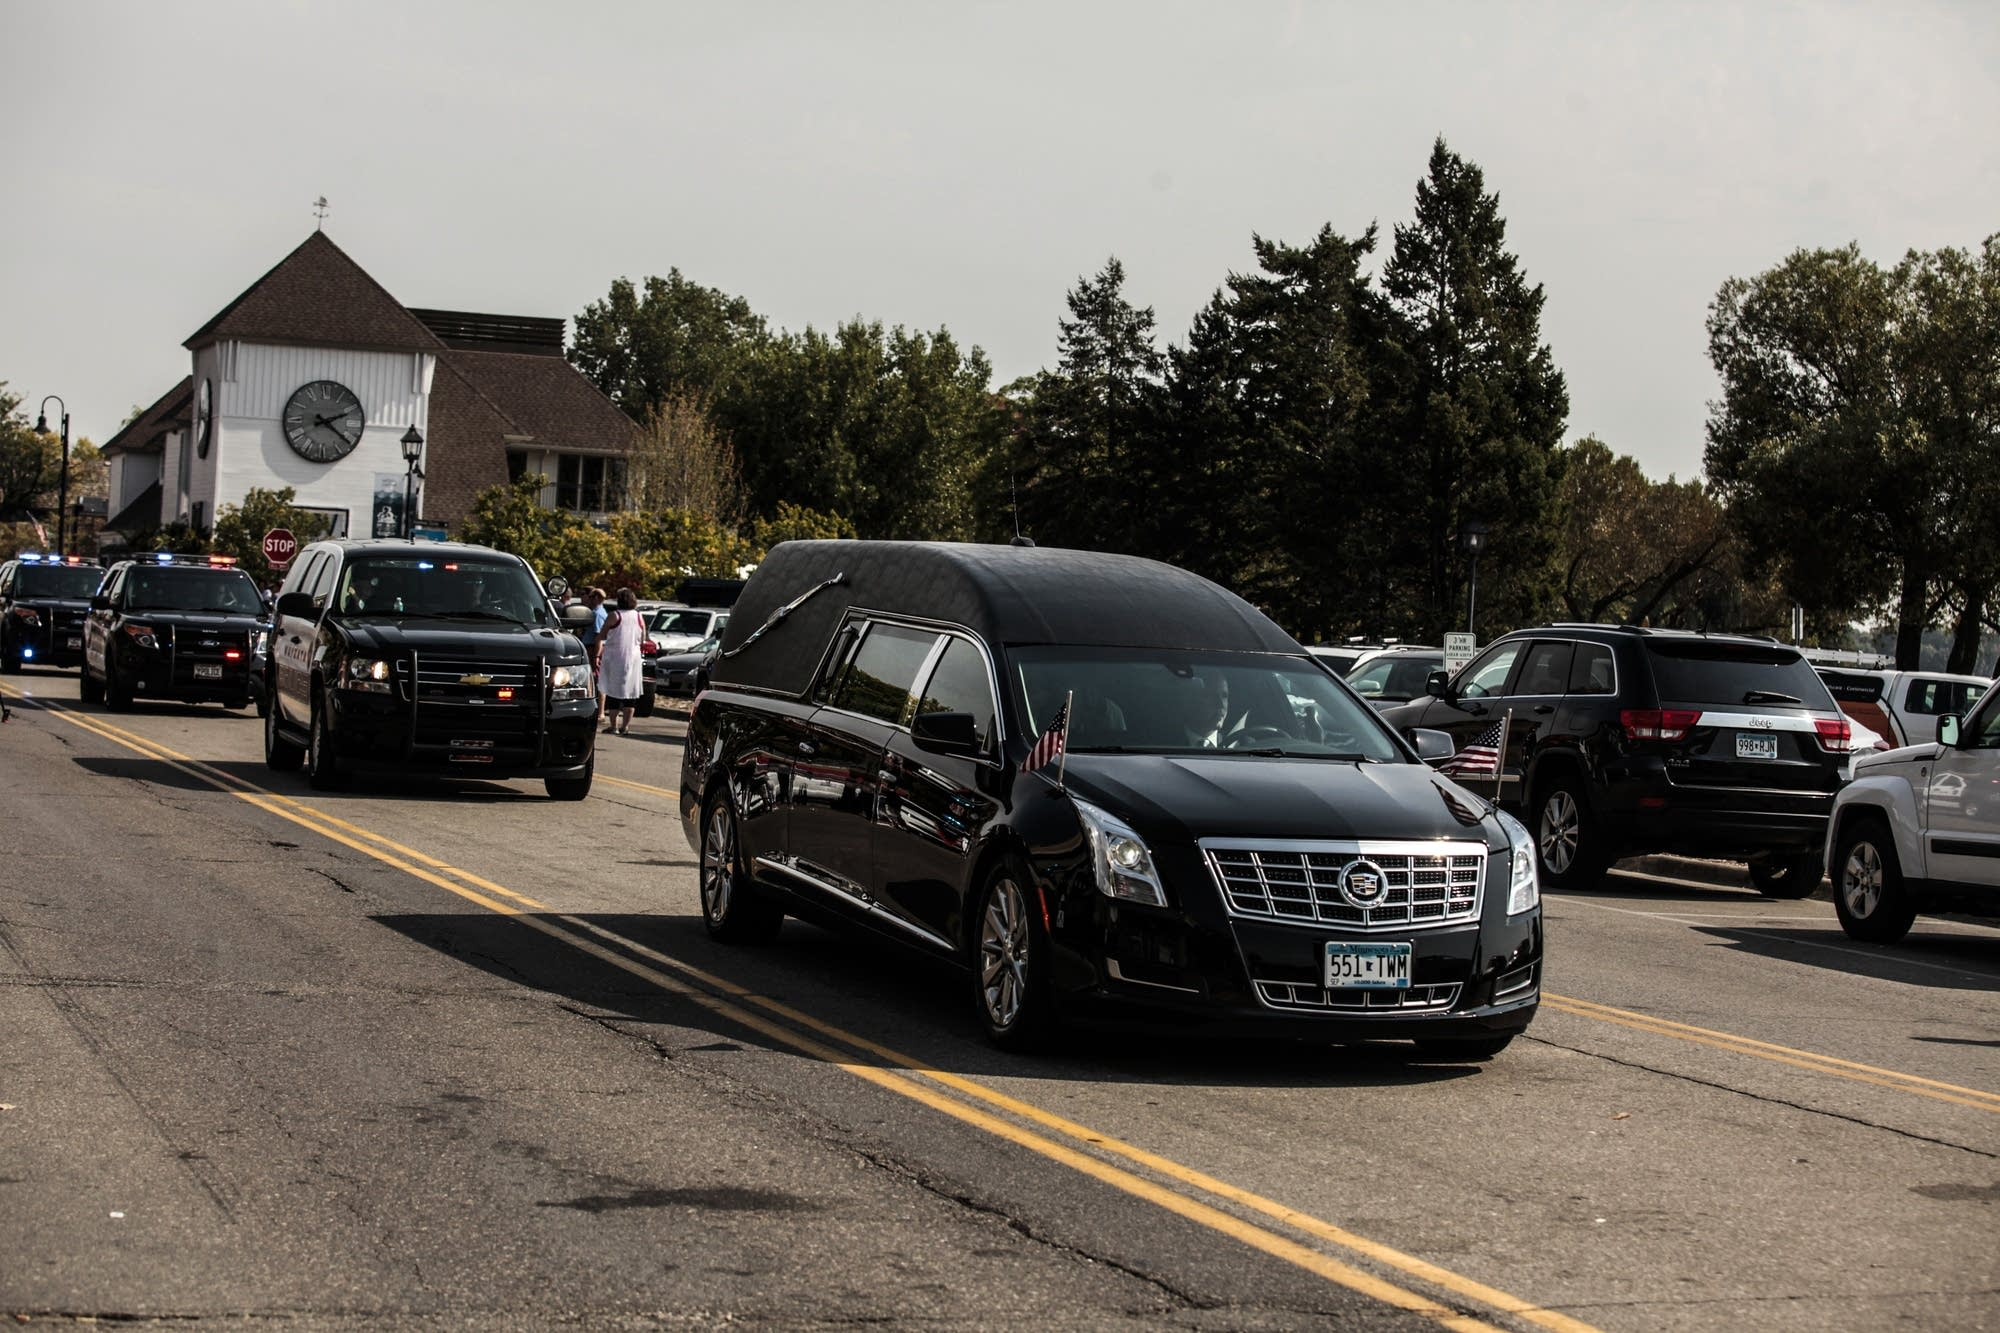 A hearse carries officer Mathews to the cemetery.